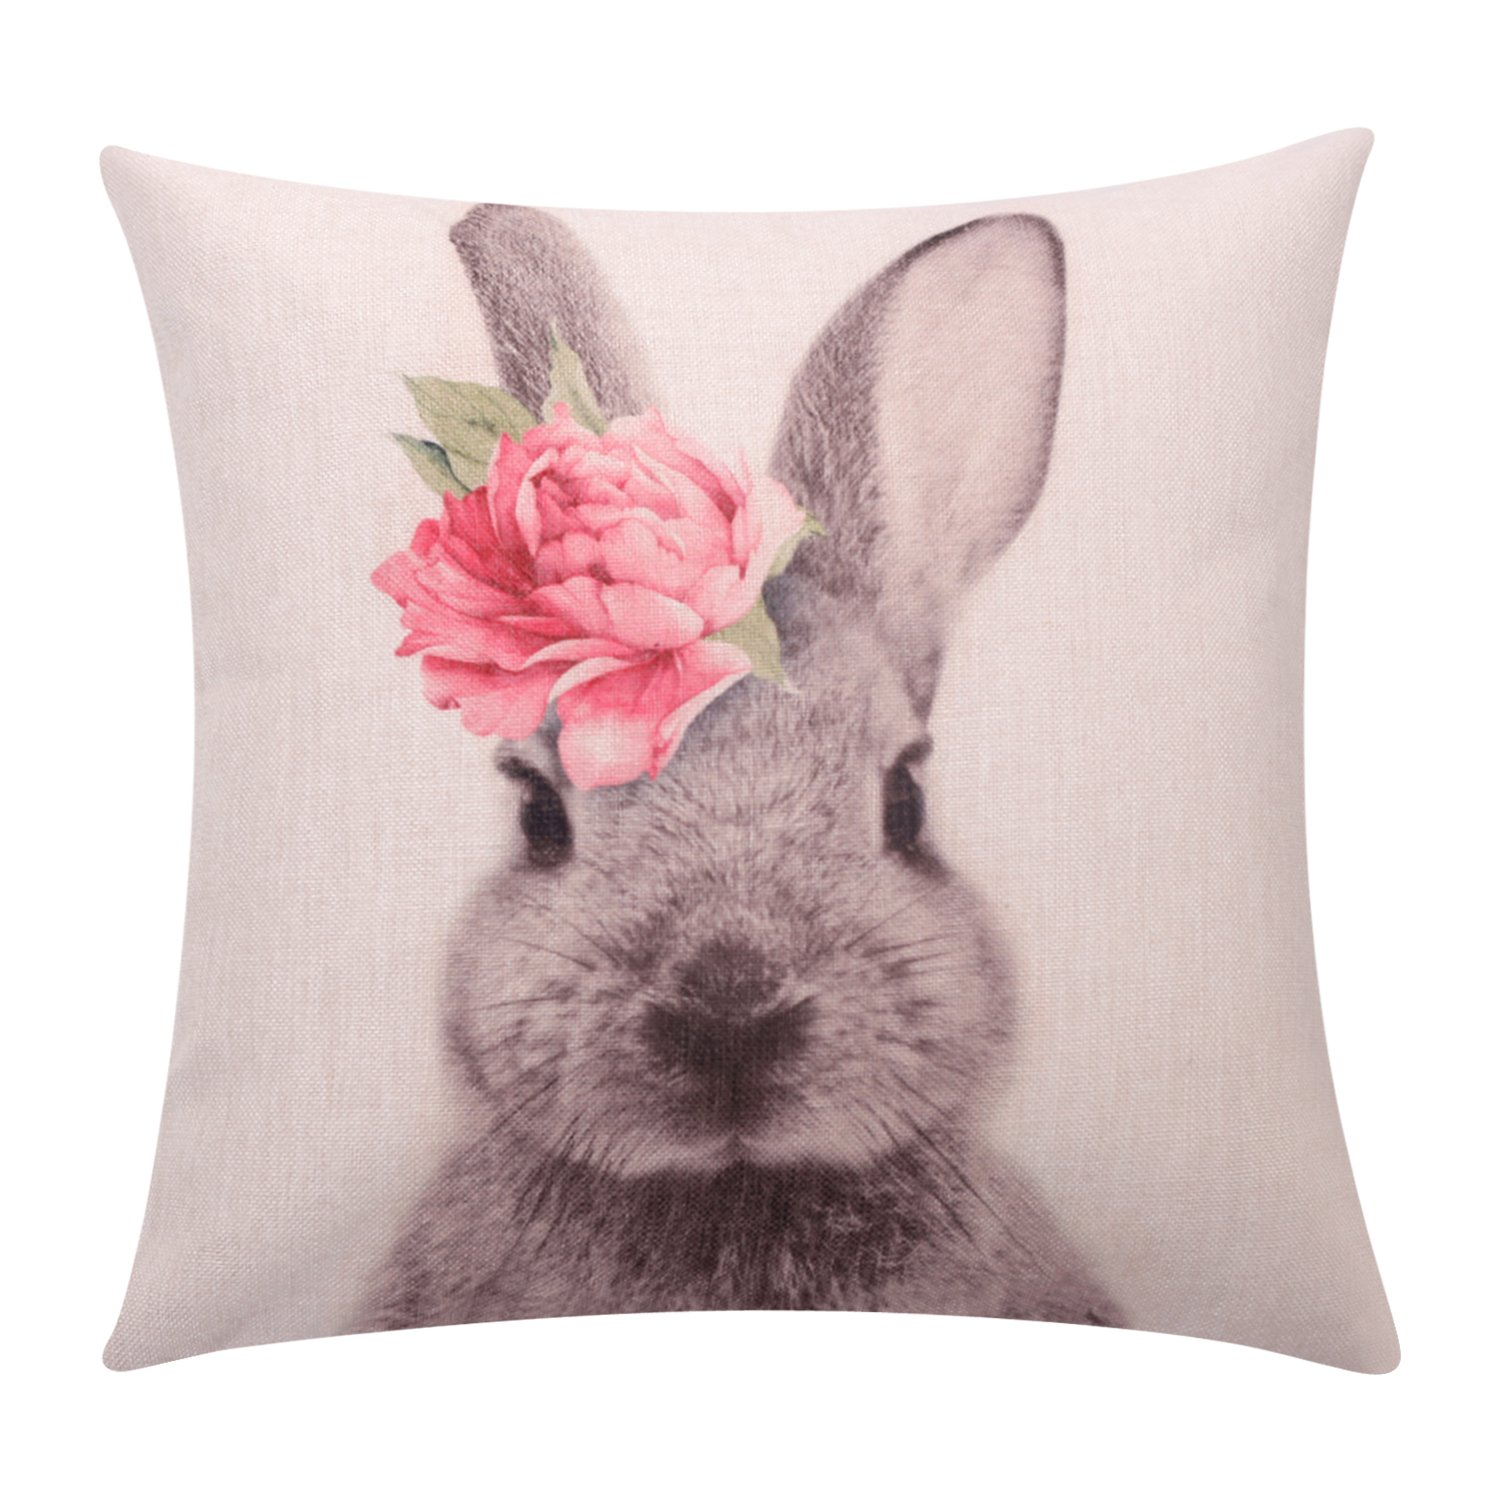 BreezyLife Easter Rabbit Throw Pillow Cover Flower Rabbit Decorative Pillow Case Square Linen Cushion Cover for Sofa Couch Outdoor Home Decor Housewarming Gift 18x18 Inches